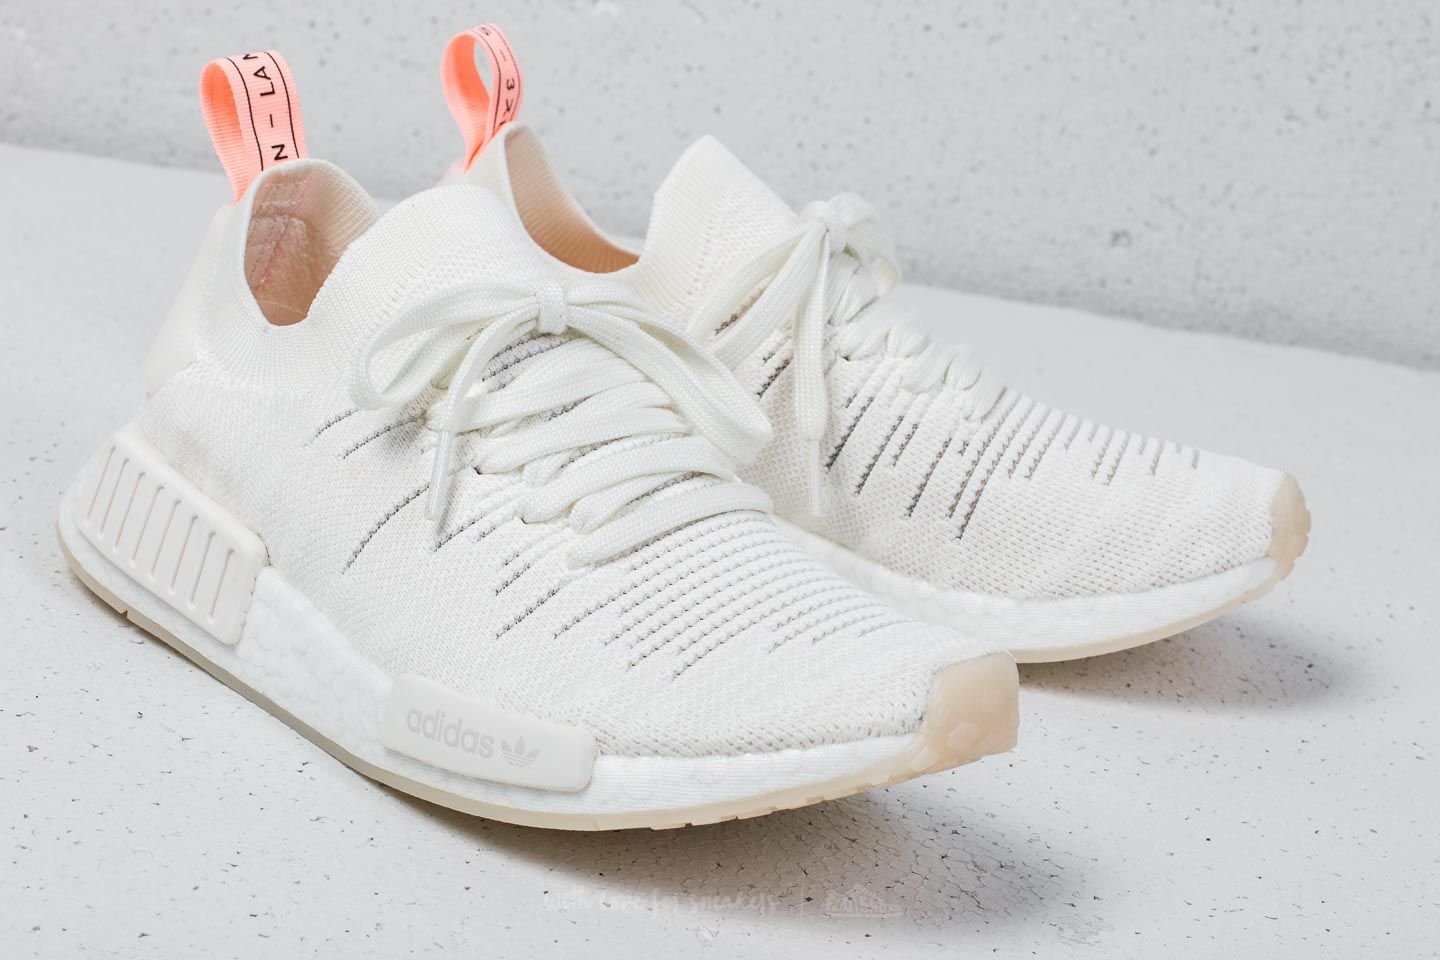 check out 40333 91539 adidas NMD_R1 STLT Primeknit W Cloud White/ Cloud White ...